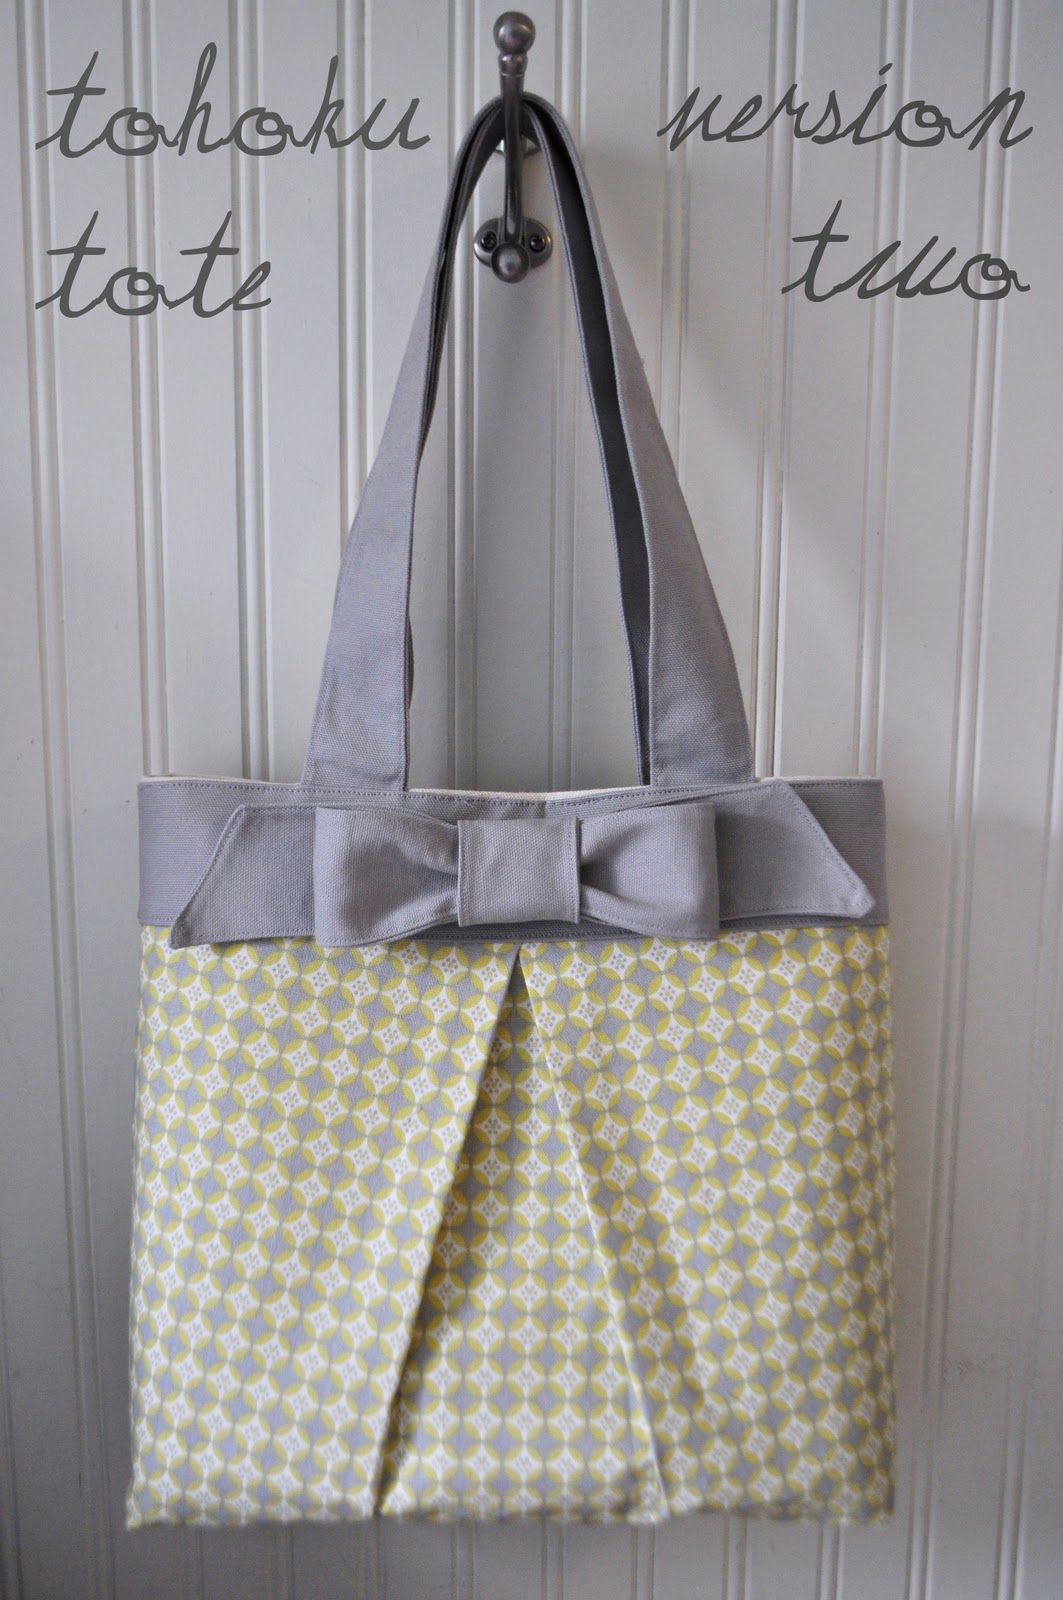 The tohoku tote bag free pattern tutorial how to sew box i am momma hear me roar the tohoku tote free diy tutorial and sewing pattern would be a cute purse or small diaper bag for short outings baditri Images